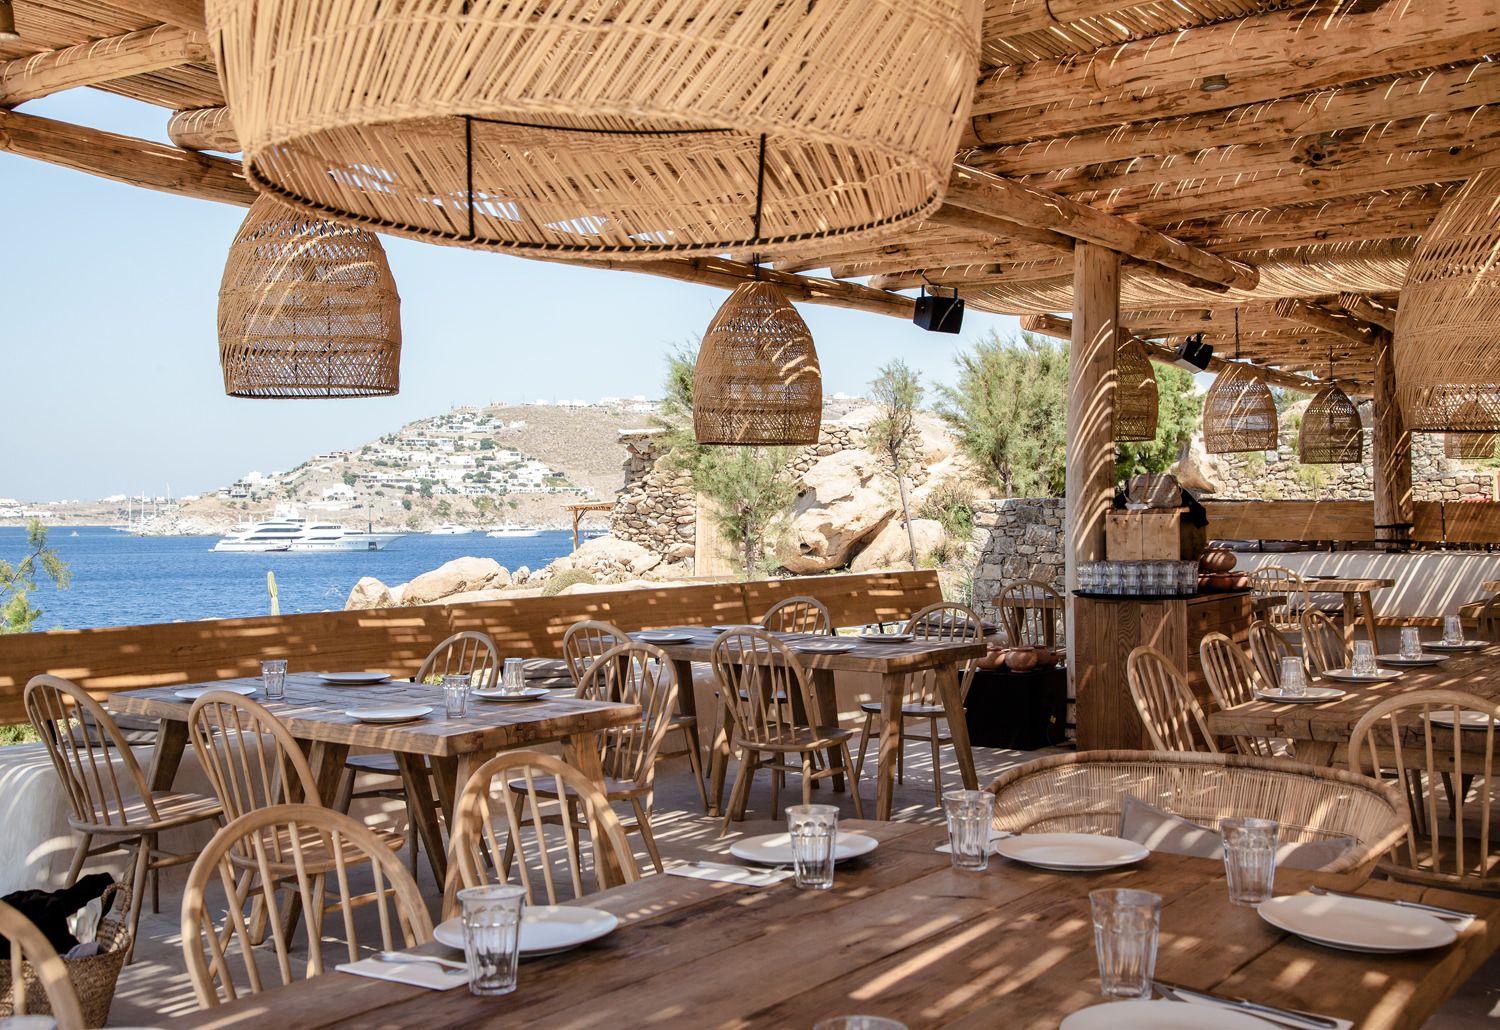 Mykonos photo diary travel guide hannah shelby for Beach bar decorating ideas